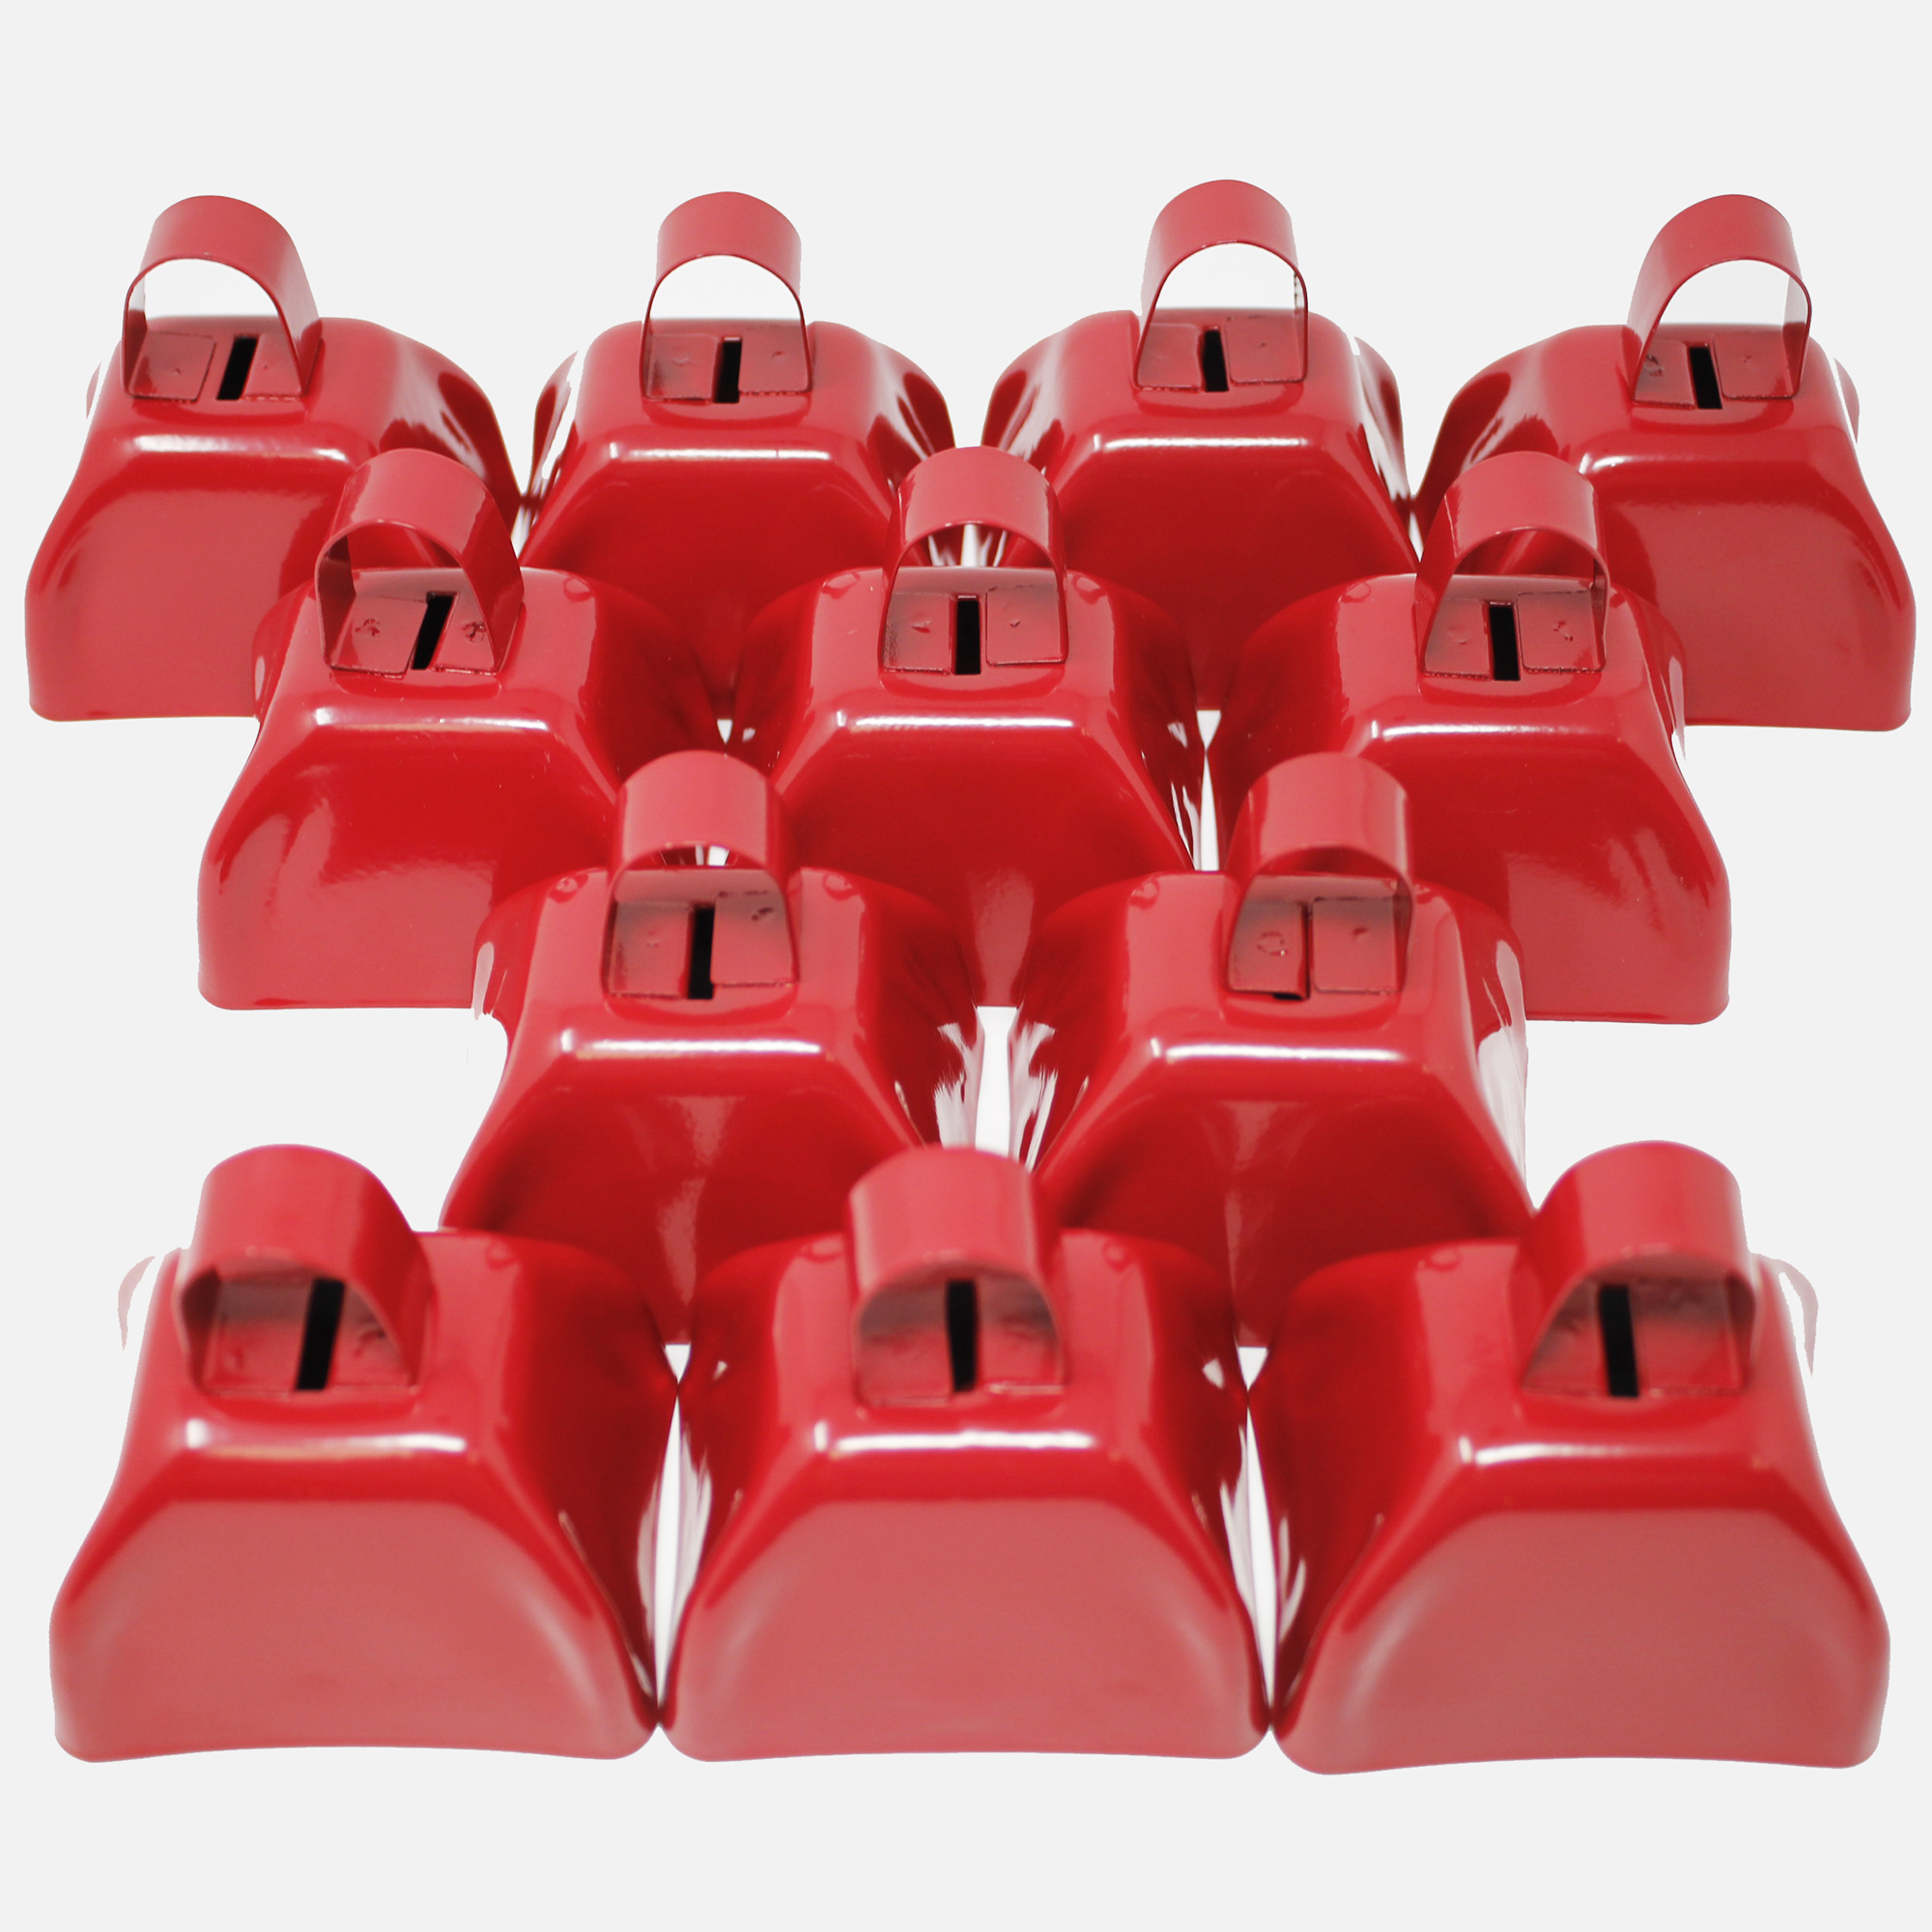 3 Inch Red Metal Cowbell - 12ct